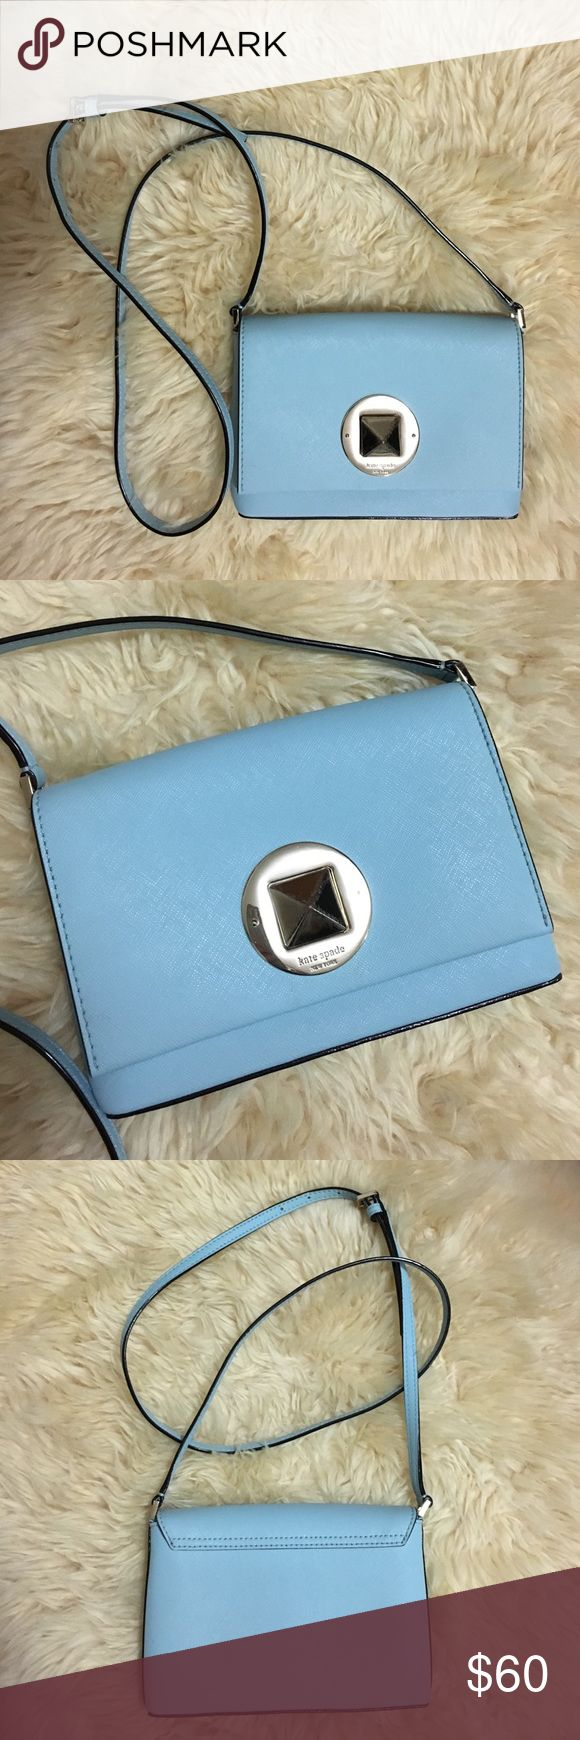 """Kate Spade New York Newbury Lane Sally Crossbody Kate Spade New York Newbury Lane Sally Crossbody in Blue Hydrangea. Features Saffiano leather with 14-karat light gold plated hardware 7.5"""" W x 5"""" H x 1"""" D  Crossbody strap with 21"""" drop Turnlock closure Interior features slip pocket. Scratches on lock but leather is in great condition. kate spade Bags Crossbody Bags"""